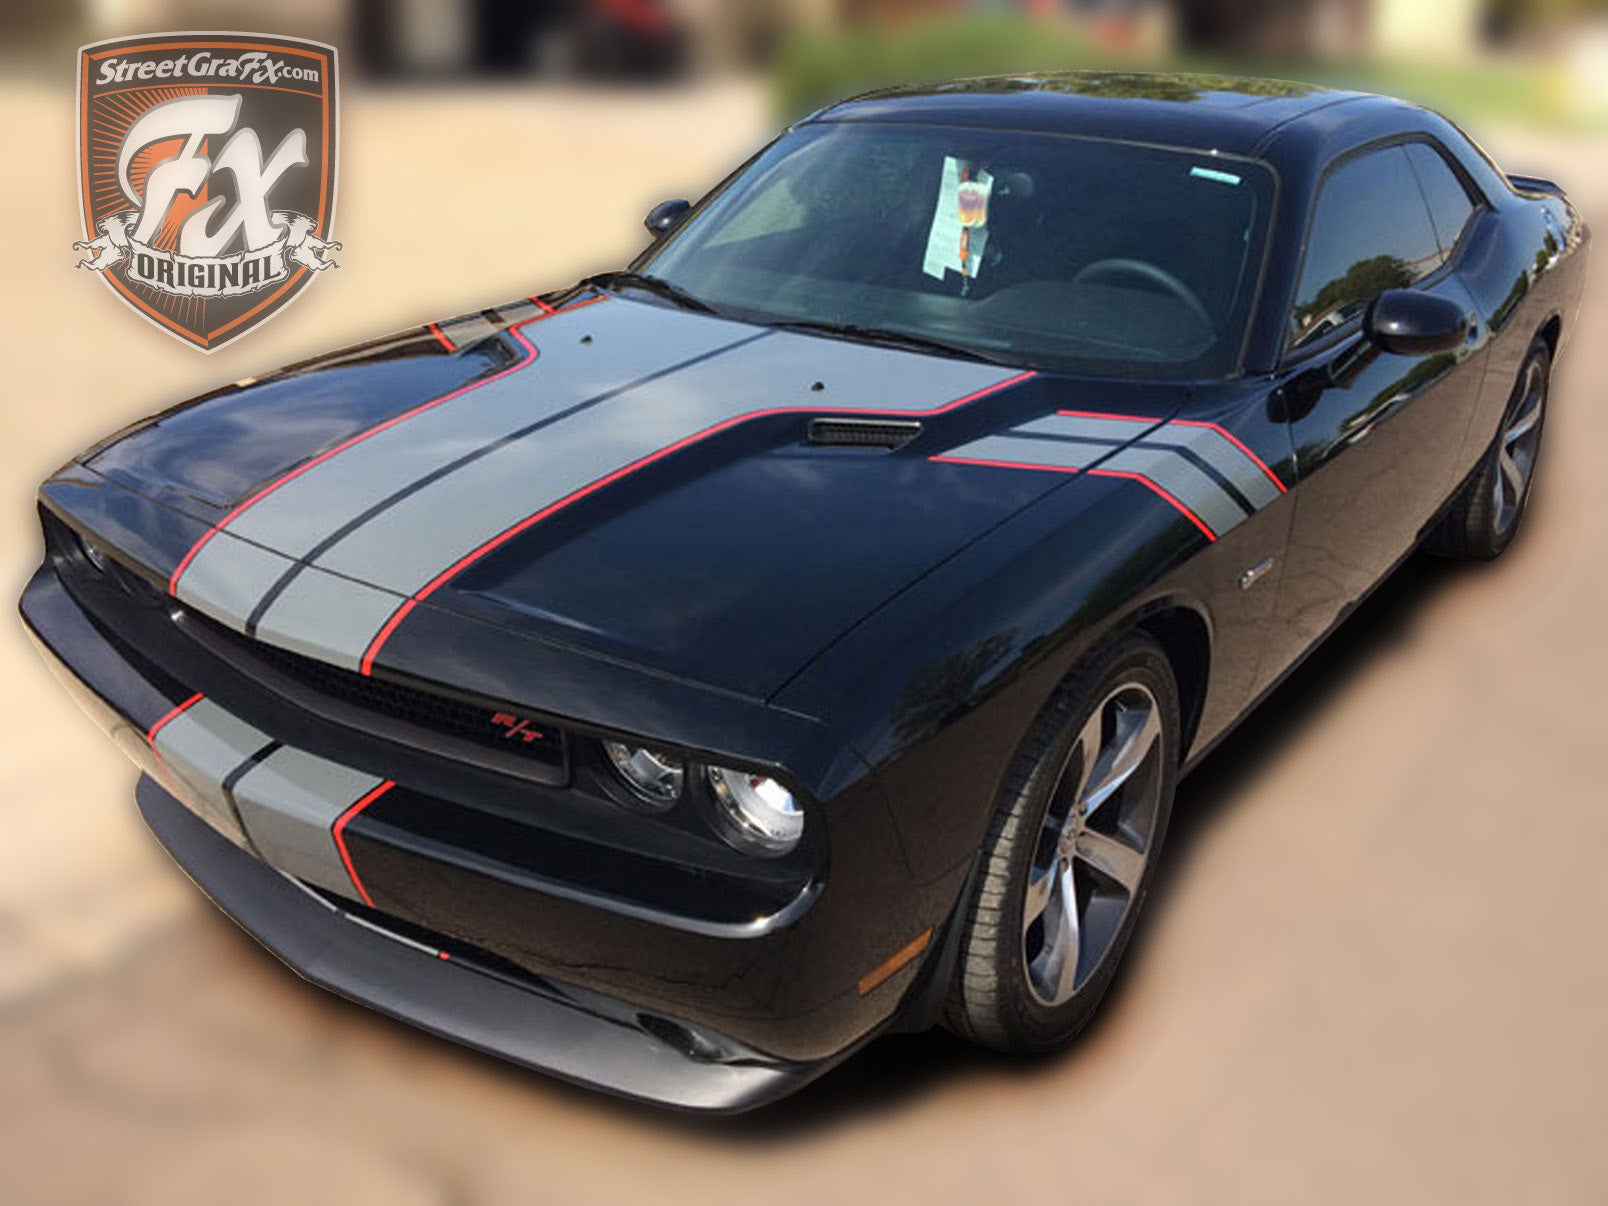 Dodge Charger Rt For Sale >> Dodge Challenger Stripes, Racing Stripes, R/T Graphics – streetgrafx